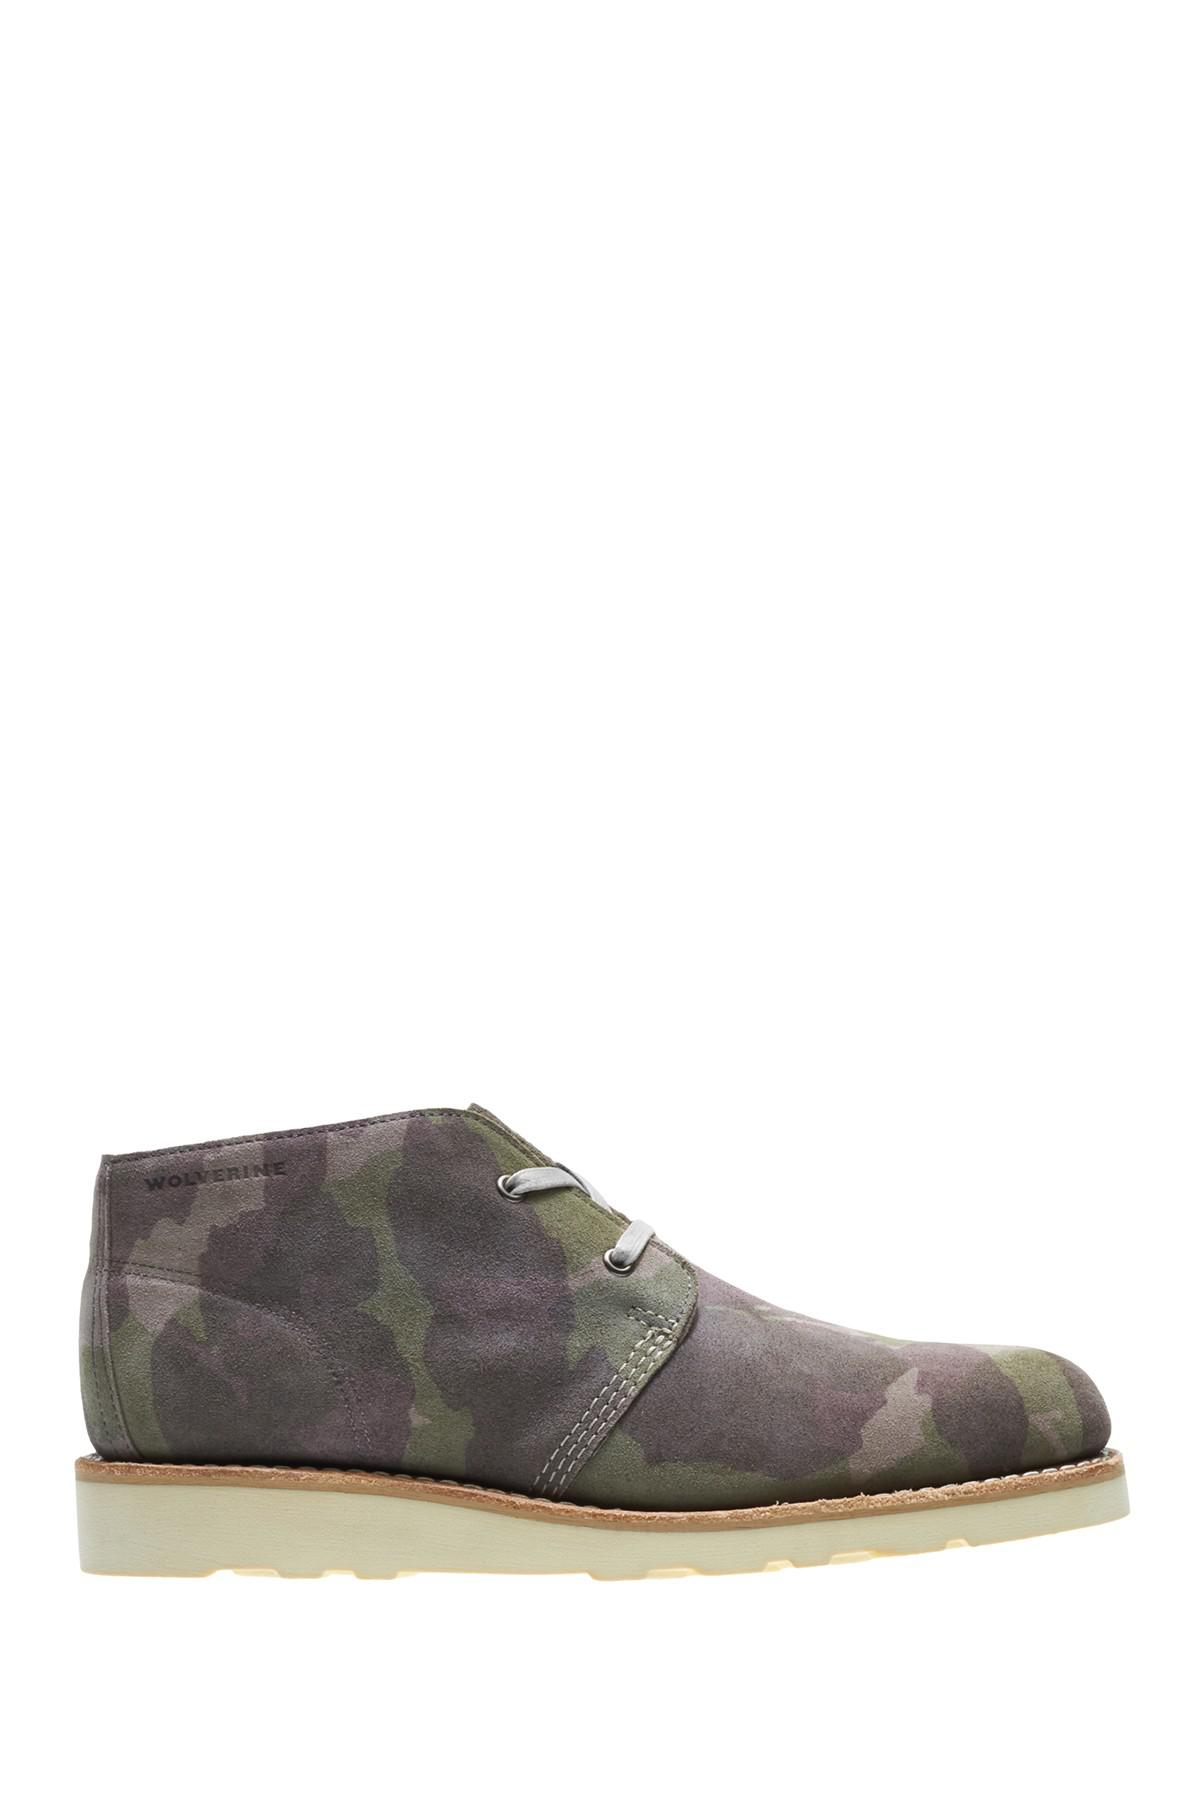 740fc3128f9 Lyst - Wolverine Liam Chukka Boot in Gray for Men